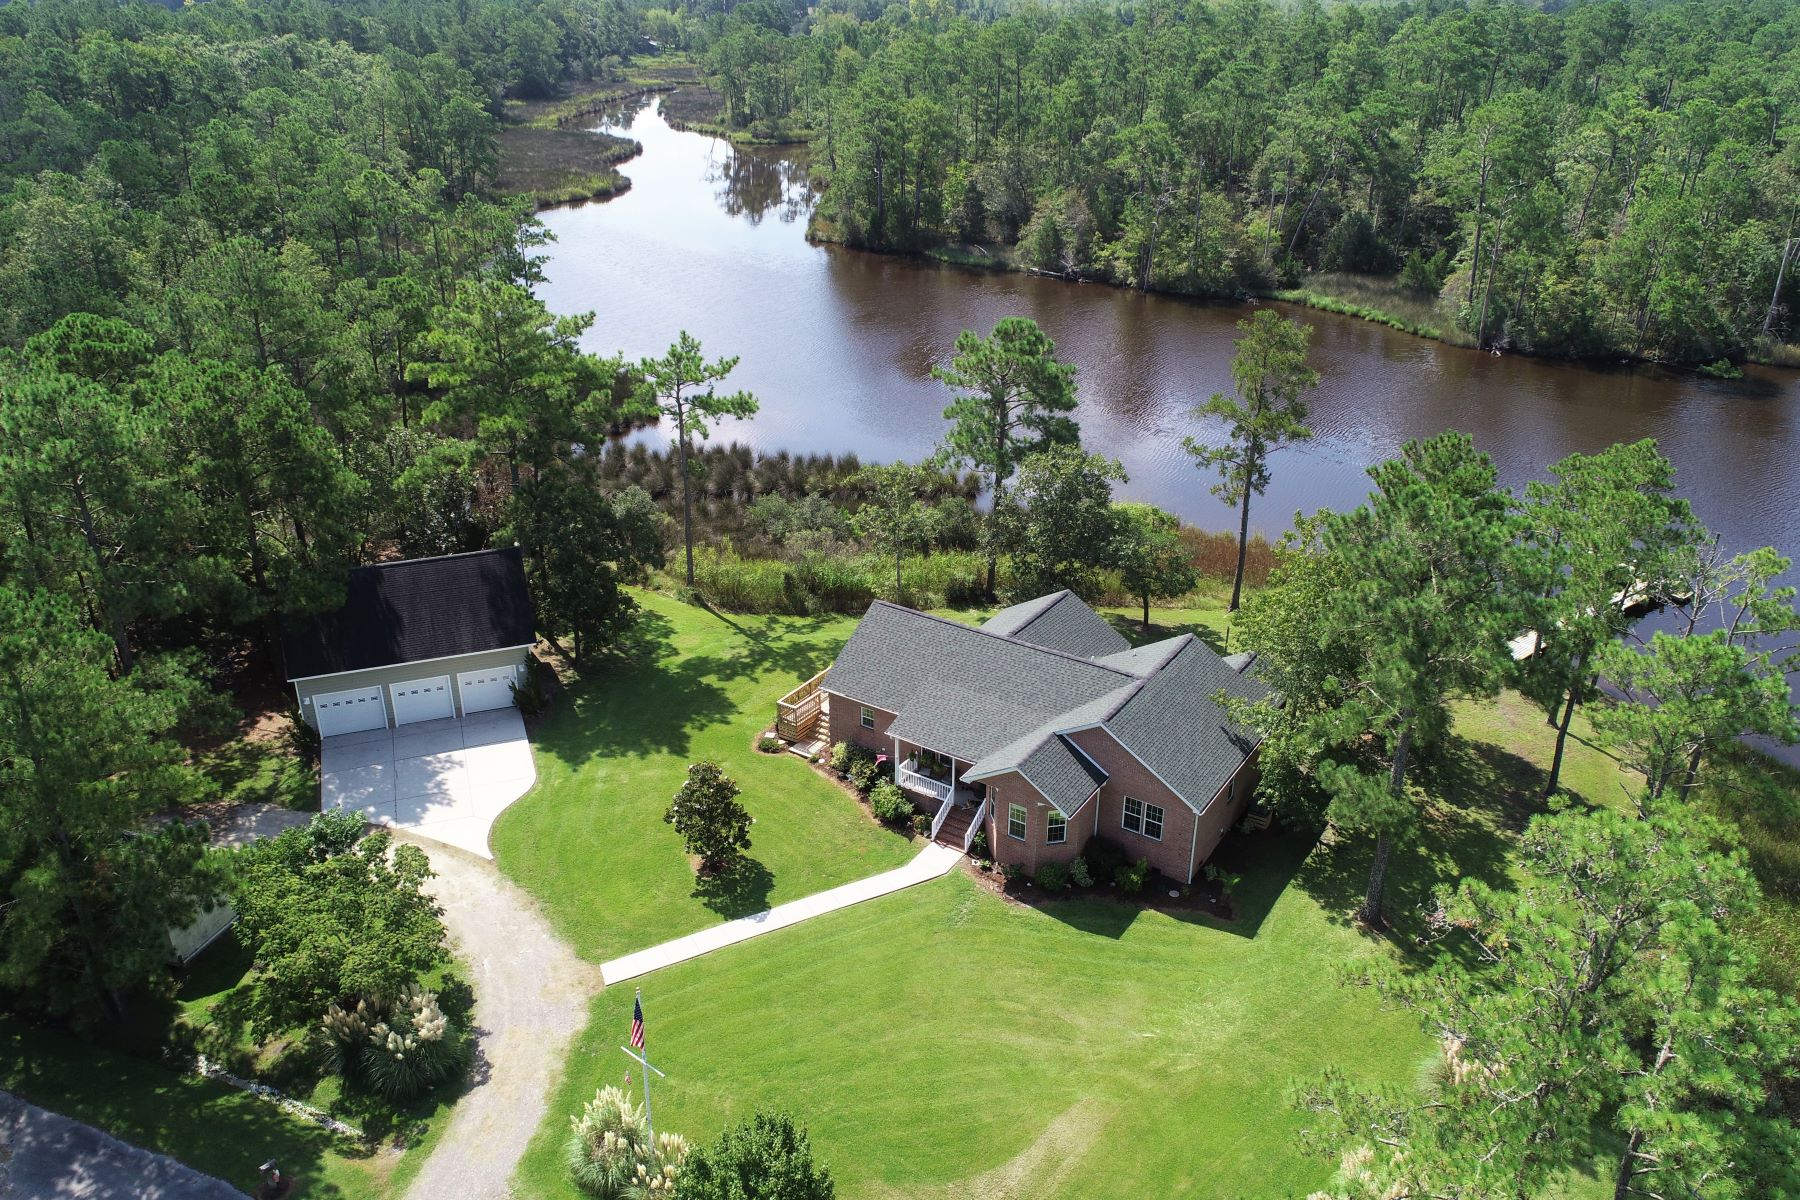 Single Family Homes for Active at Attractive Waterfront Home 201 Trawler Lane Merritt, North Carolina 28556 United States